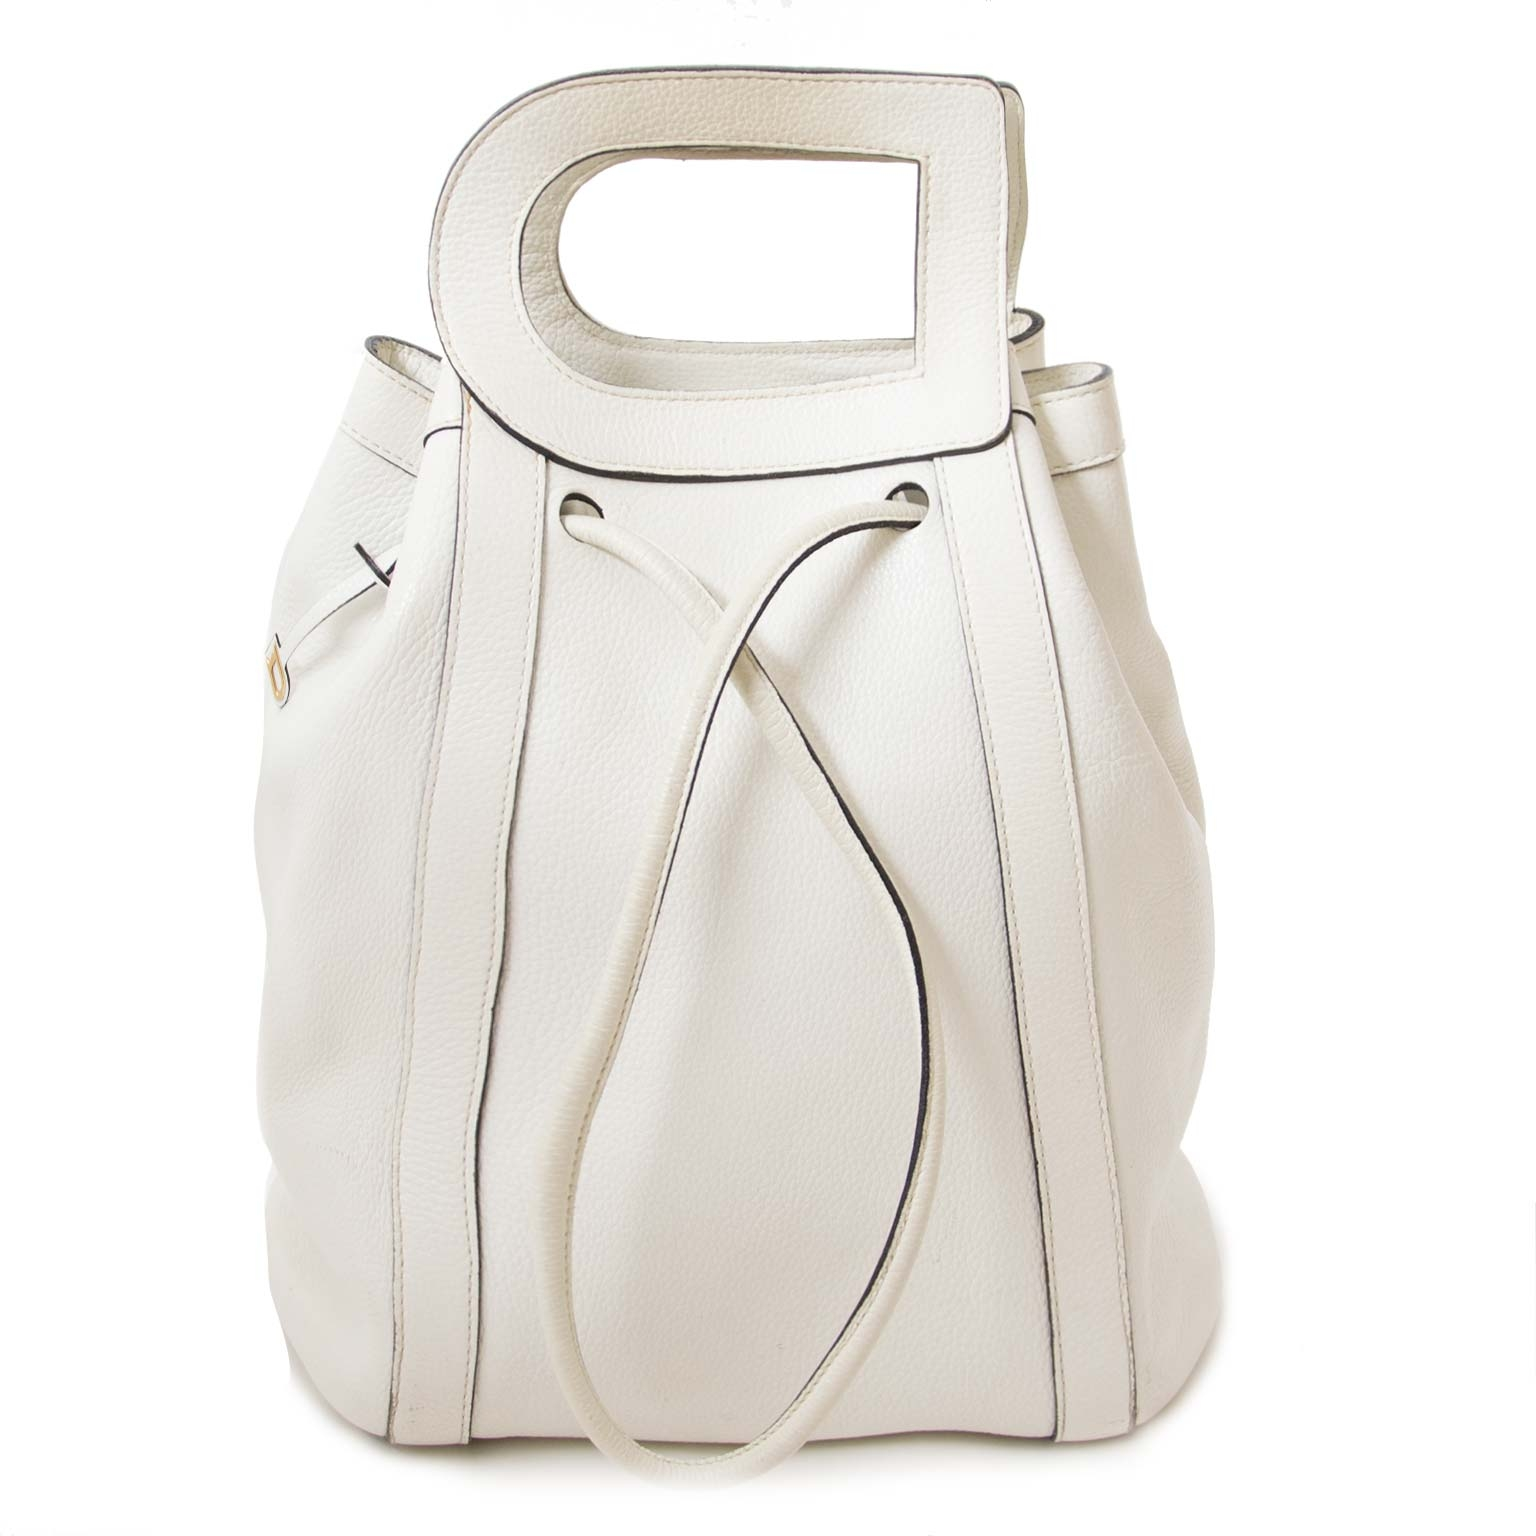 authentieke  Delvaux White Shoulderbag With 'D' Tophandle te koop bij labellov